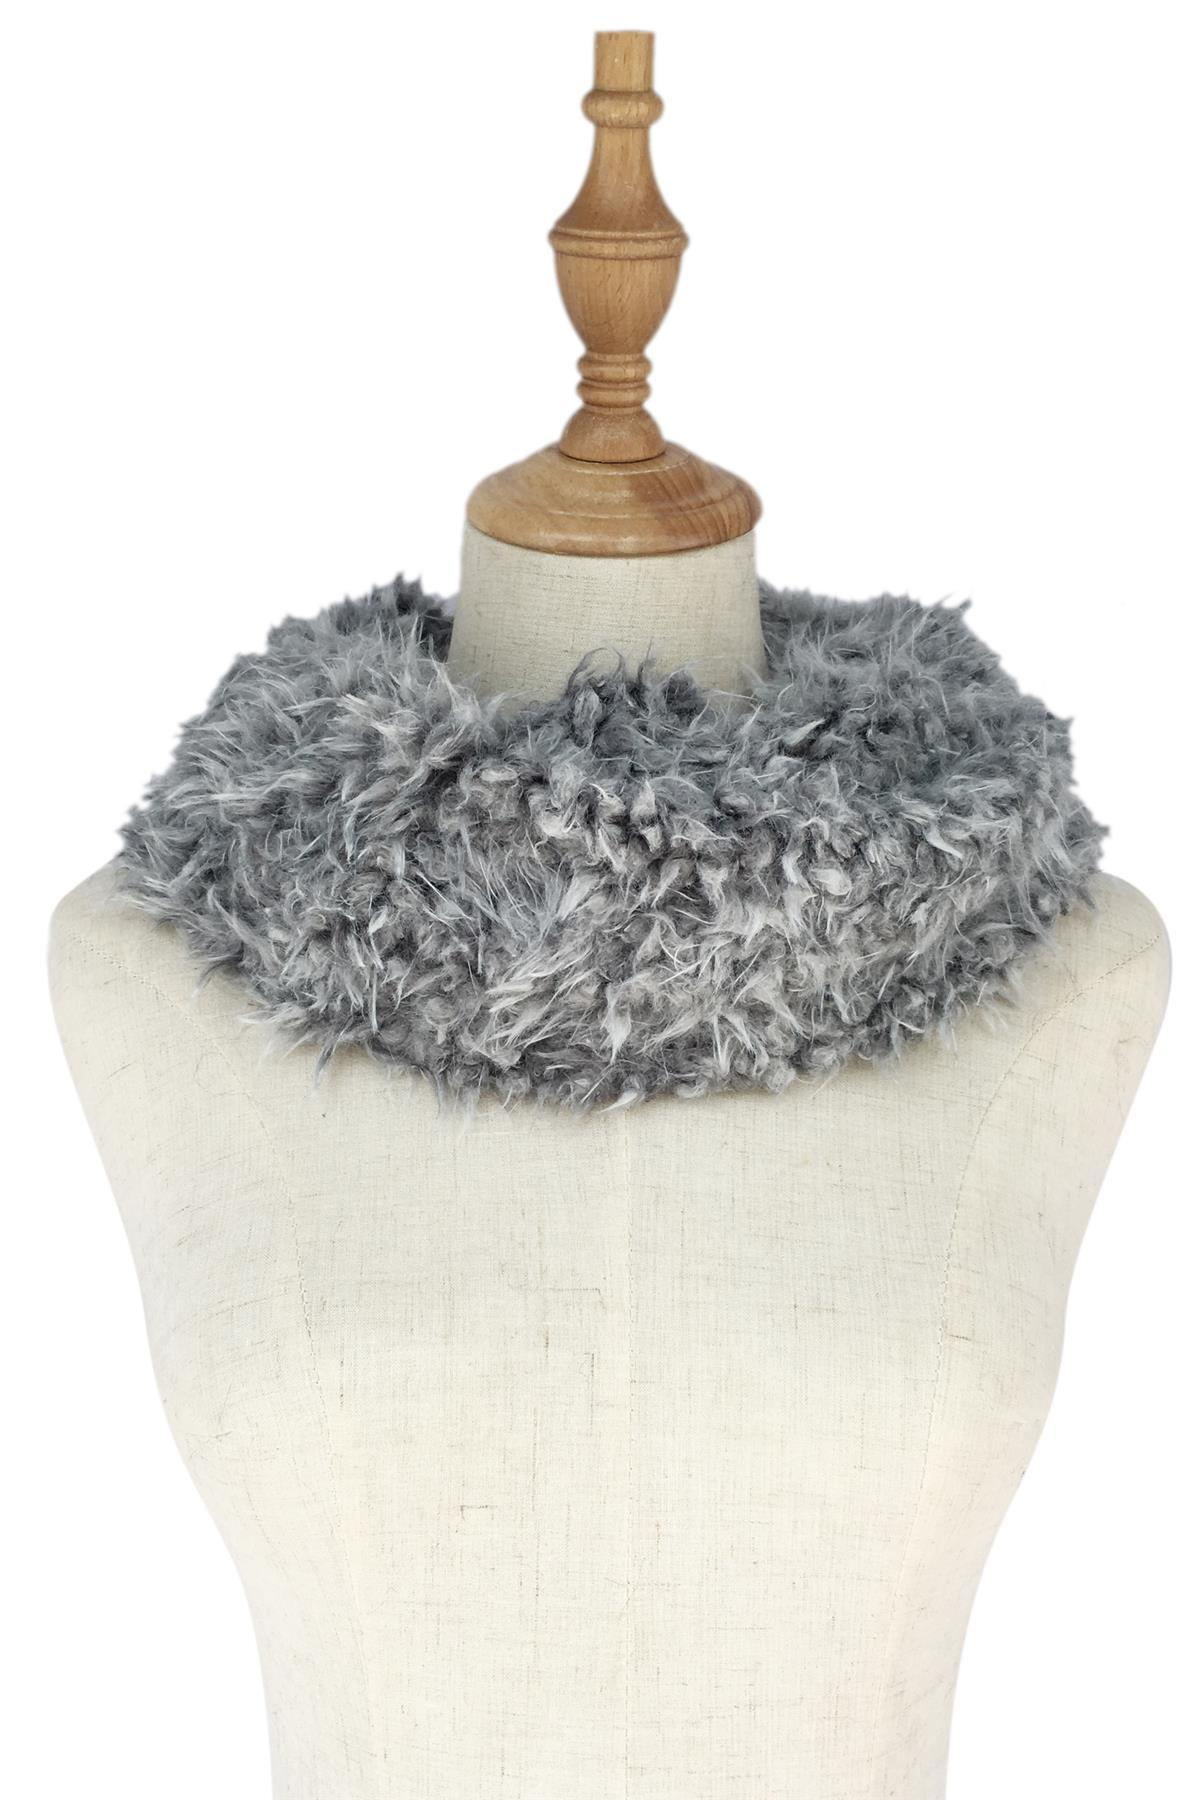 Super Soft Thick Twist Snood Black/White - The Tulip Tree Chiddingstone